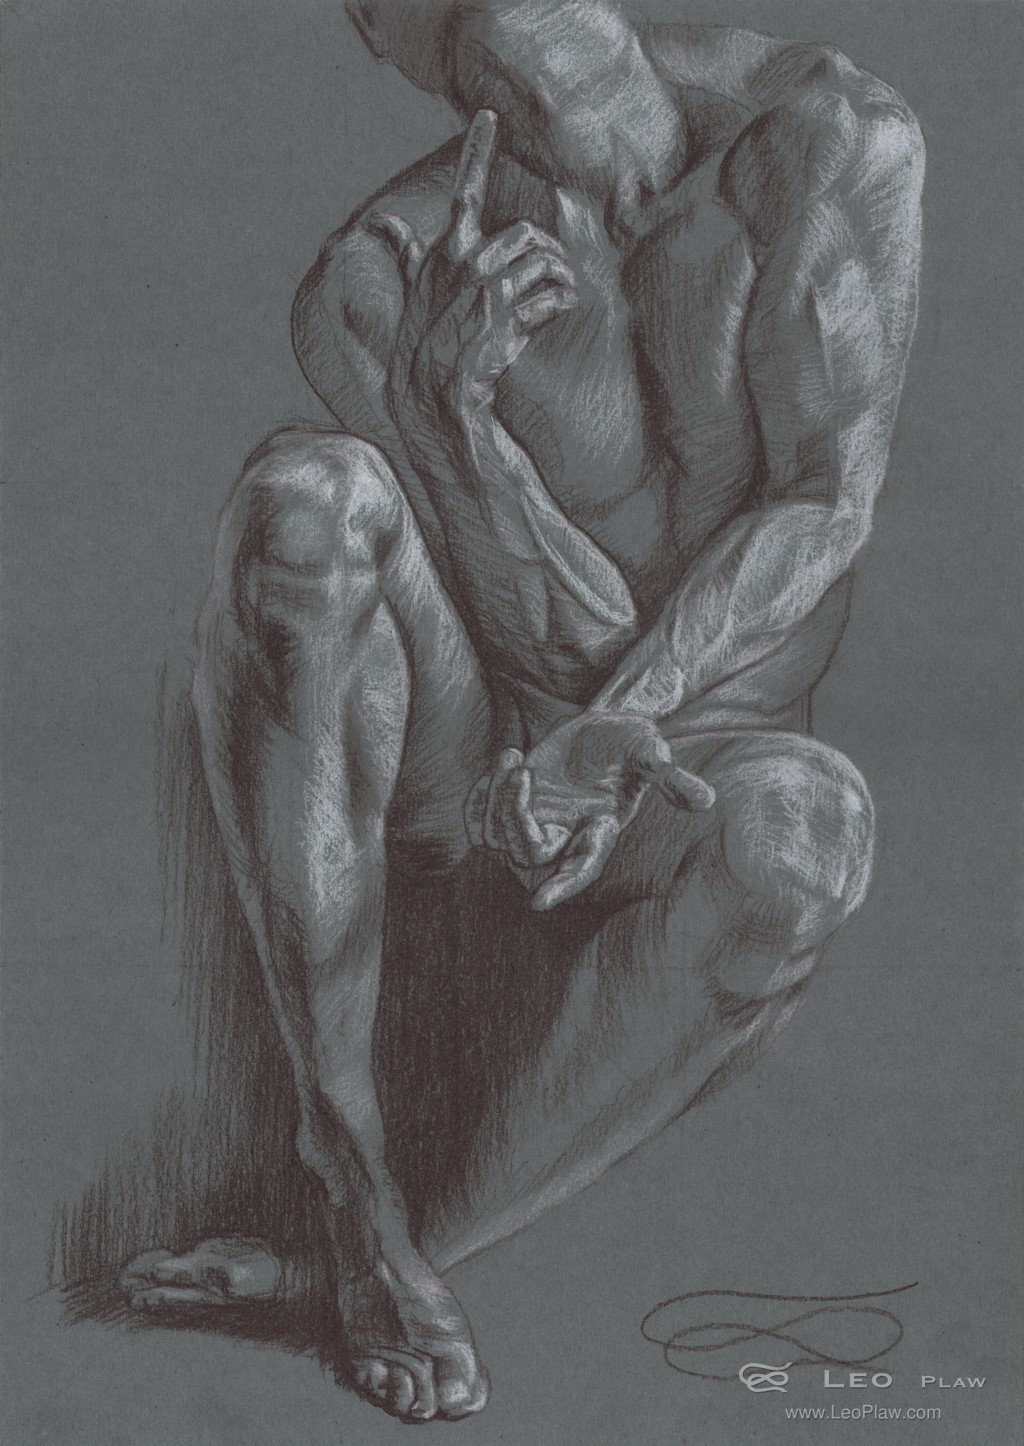 Philosopher (sketch), Leo Plaw, 24x34cm, pencil on paper